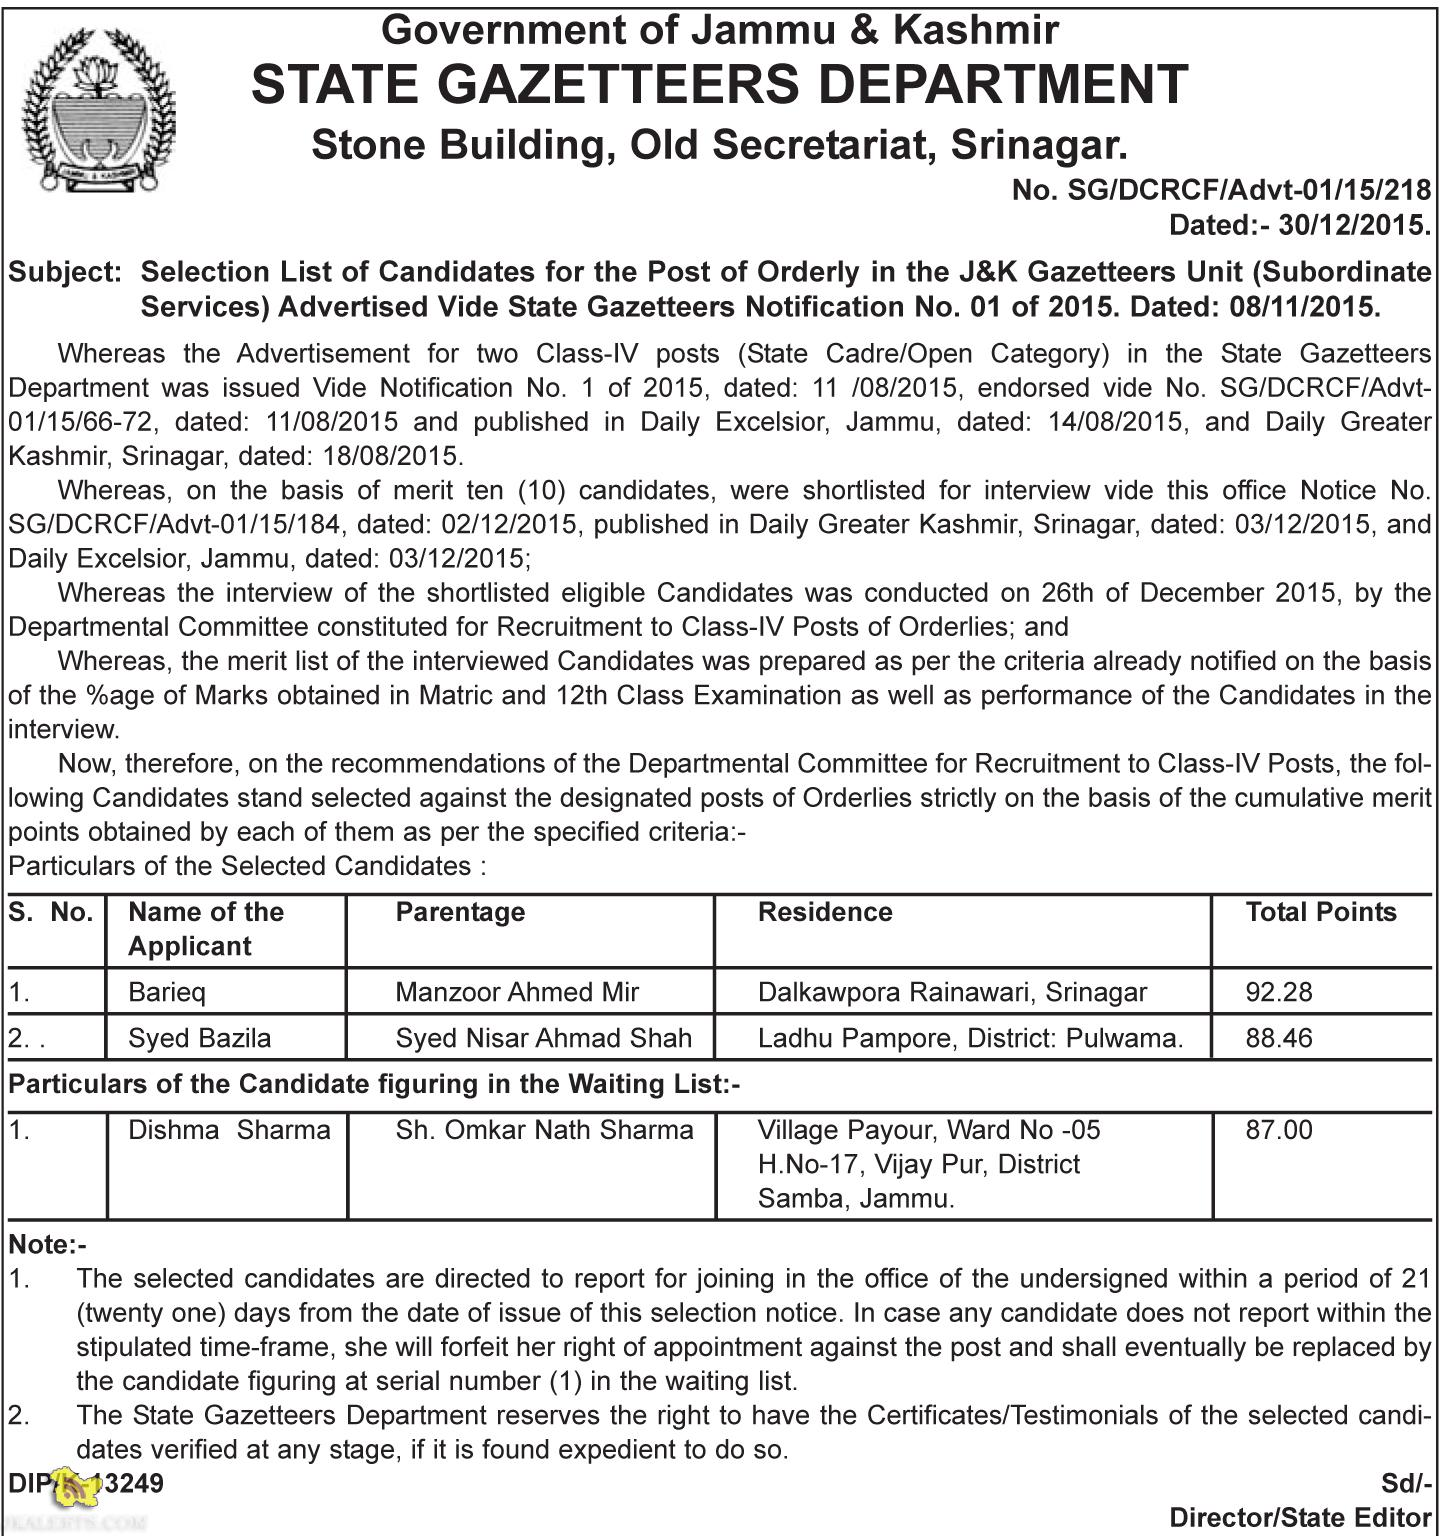 Selection List of Candidates for the Post of Orderly in the J&K Gazetteers Unit